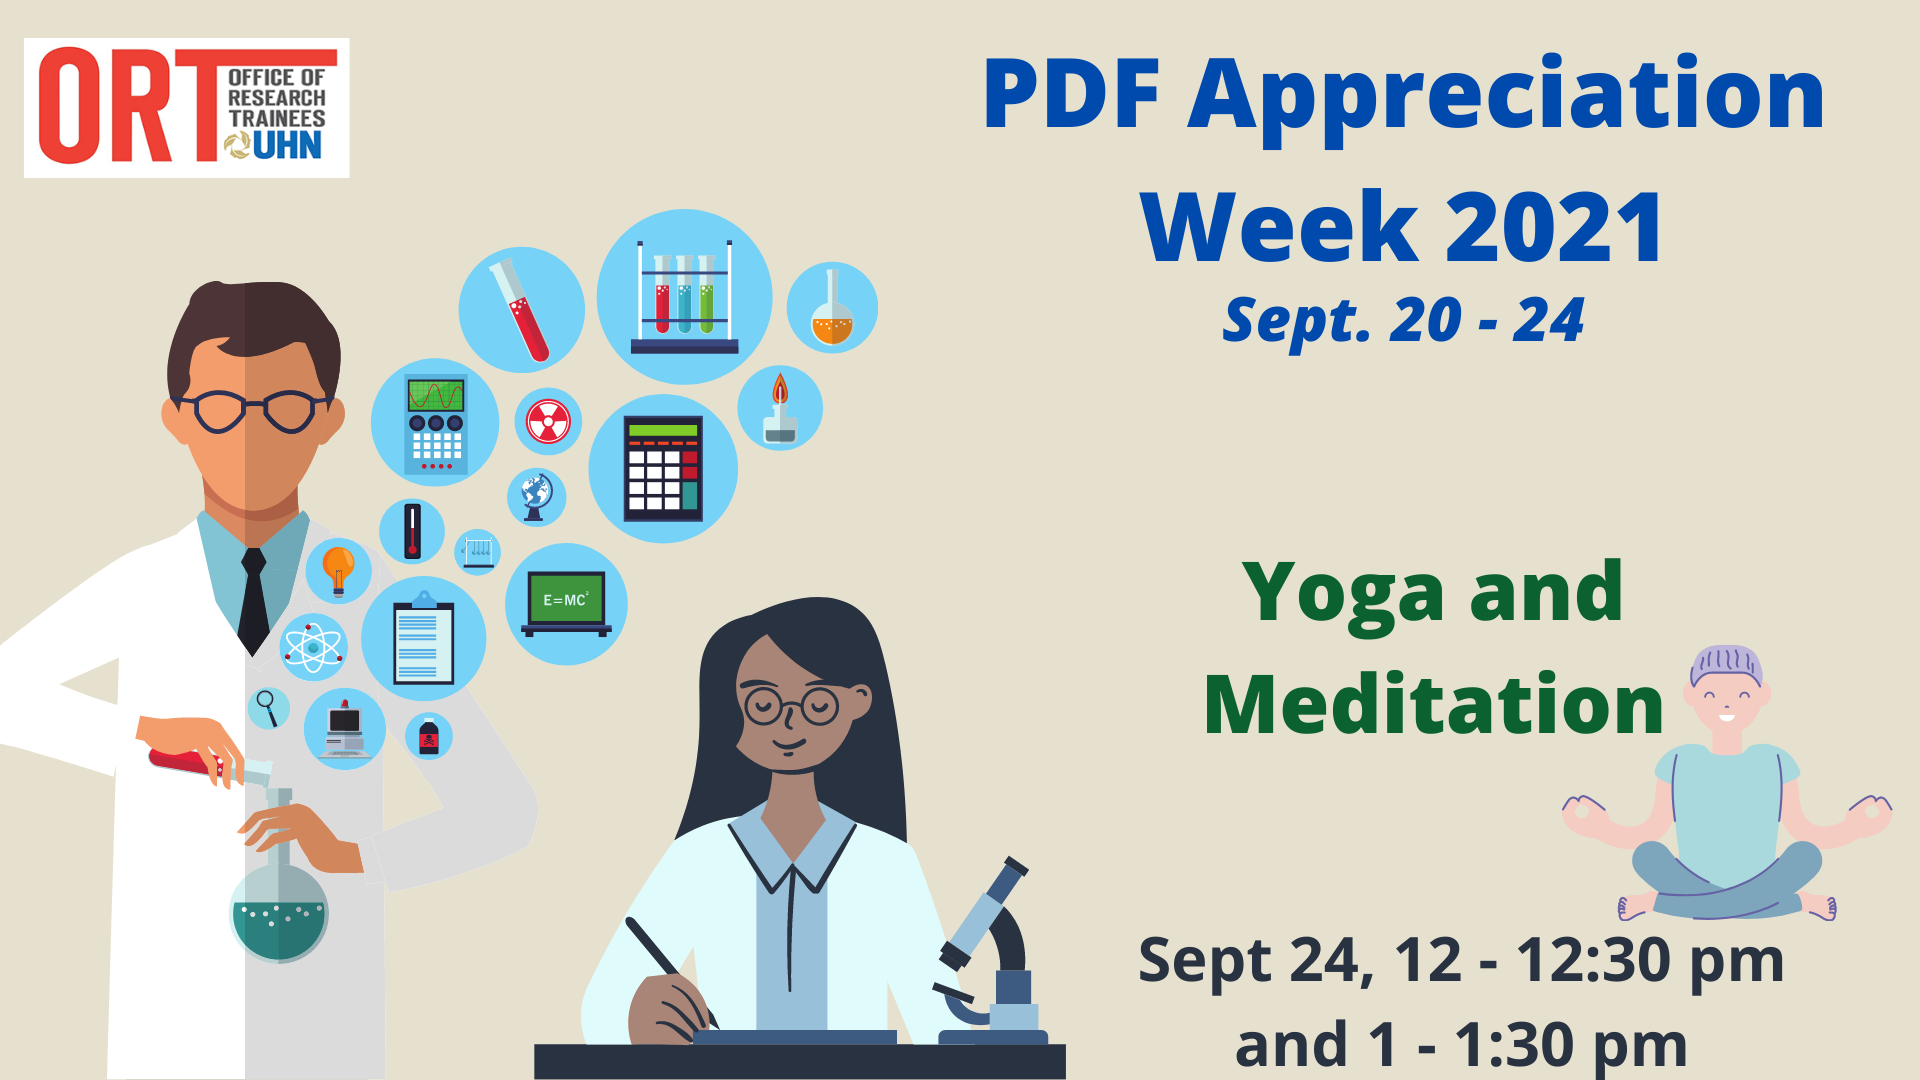 Poster for PDF Appreciation Week 2021. September 20-24. The poster is beige with an image of two scientists, one with a microscope writing on a piece of paper and another with different blue bubbles of science objects coming out of the flask. Poster reads Yoga and Meditation, September 24 12-12:30 pm and 1-1:30 pm. There is an image of a person doing yoga on the right.